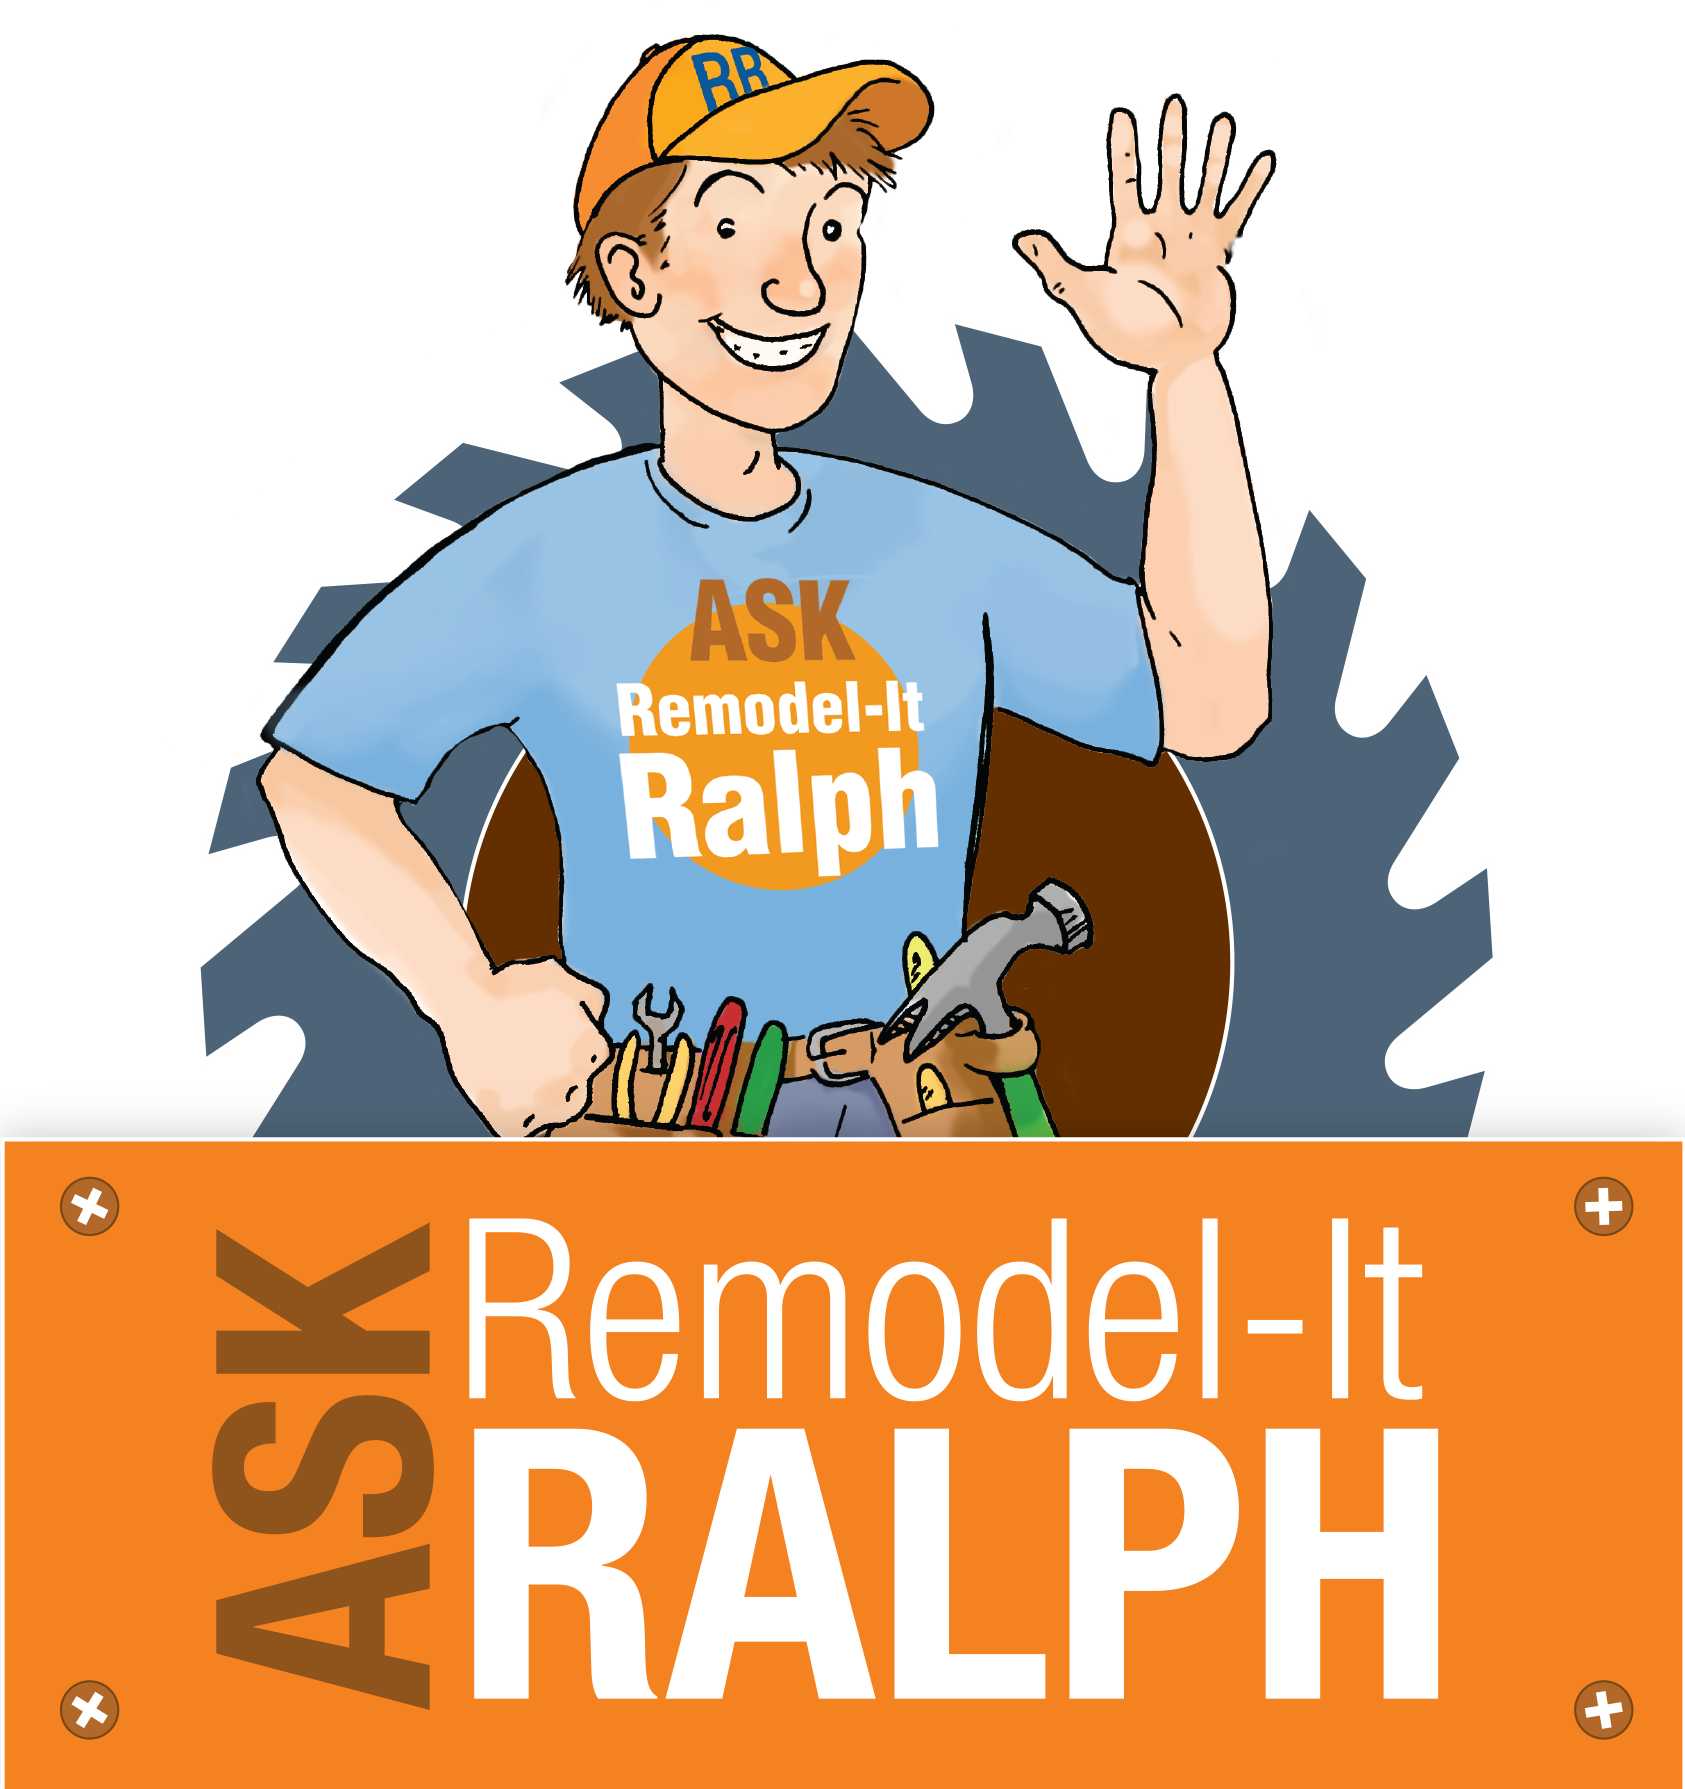 The Basic Basement Co. - Ask Remodel-it Ralph